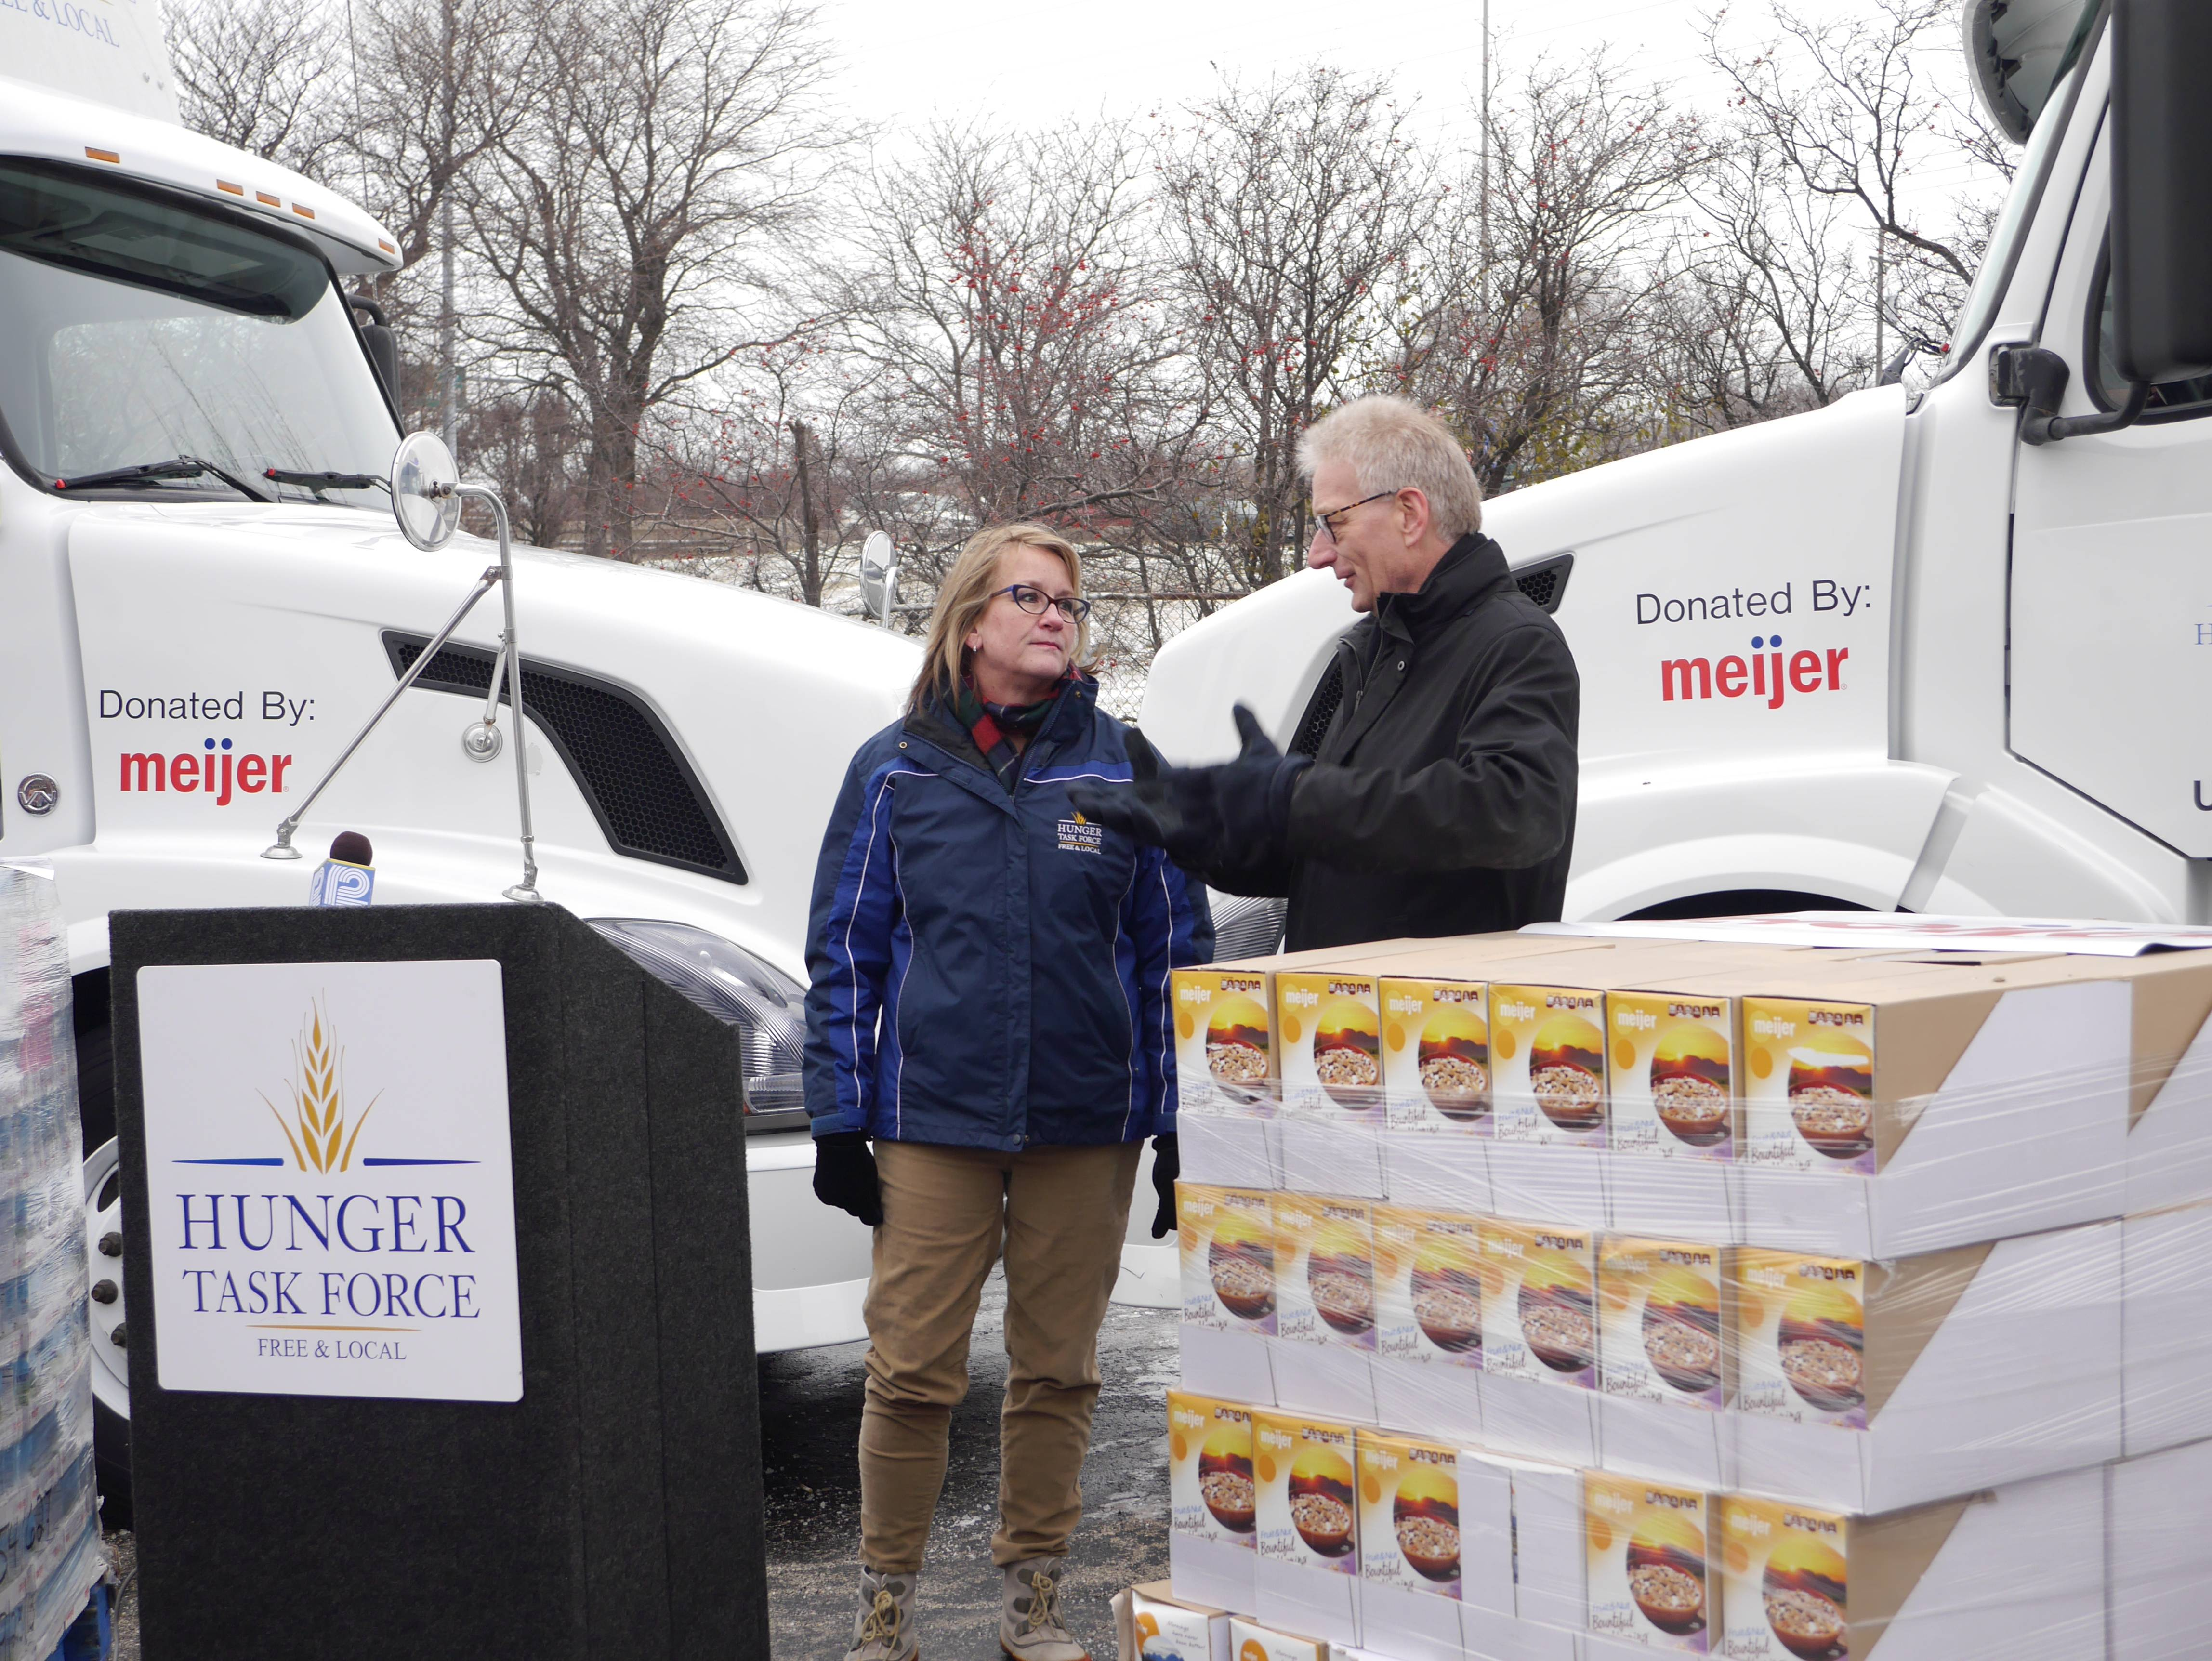 Meijer donates trucks, trailers and food to Hunger Task Force